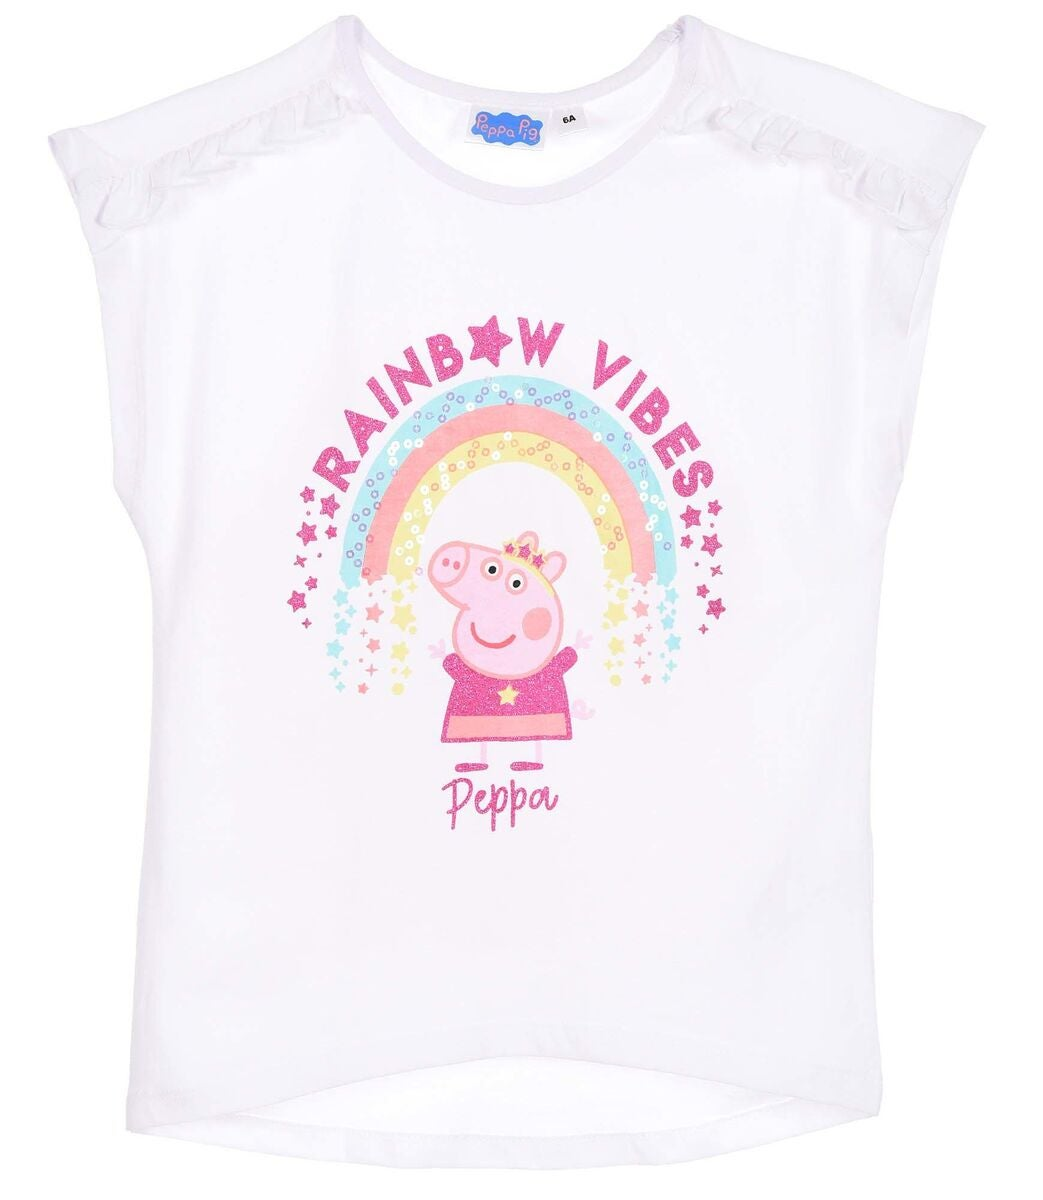 Peppa Gris T-Shirt, White